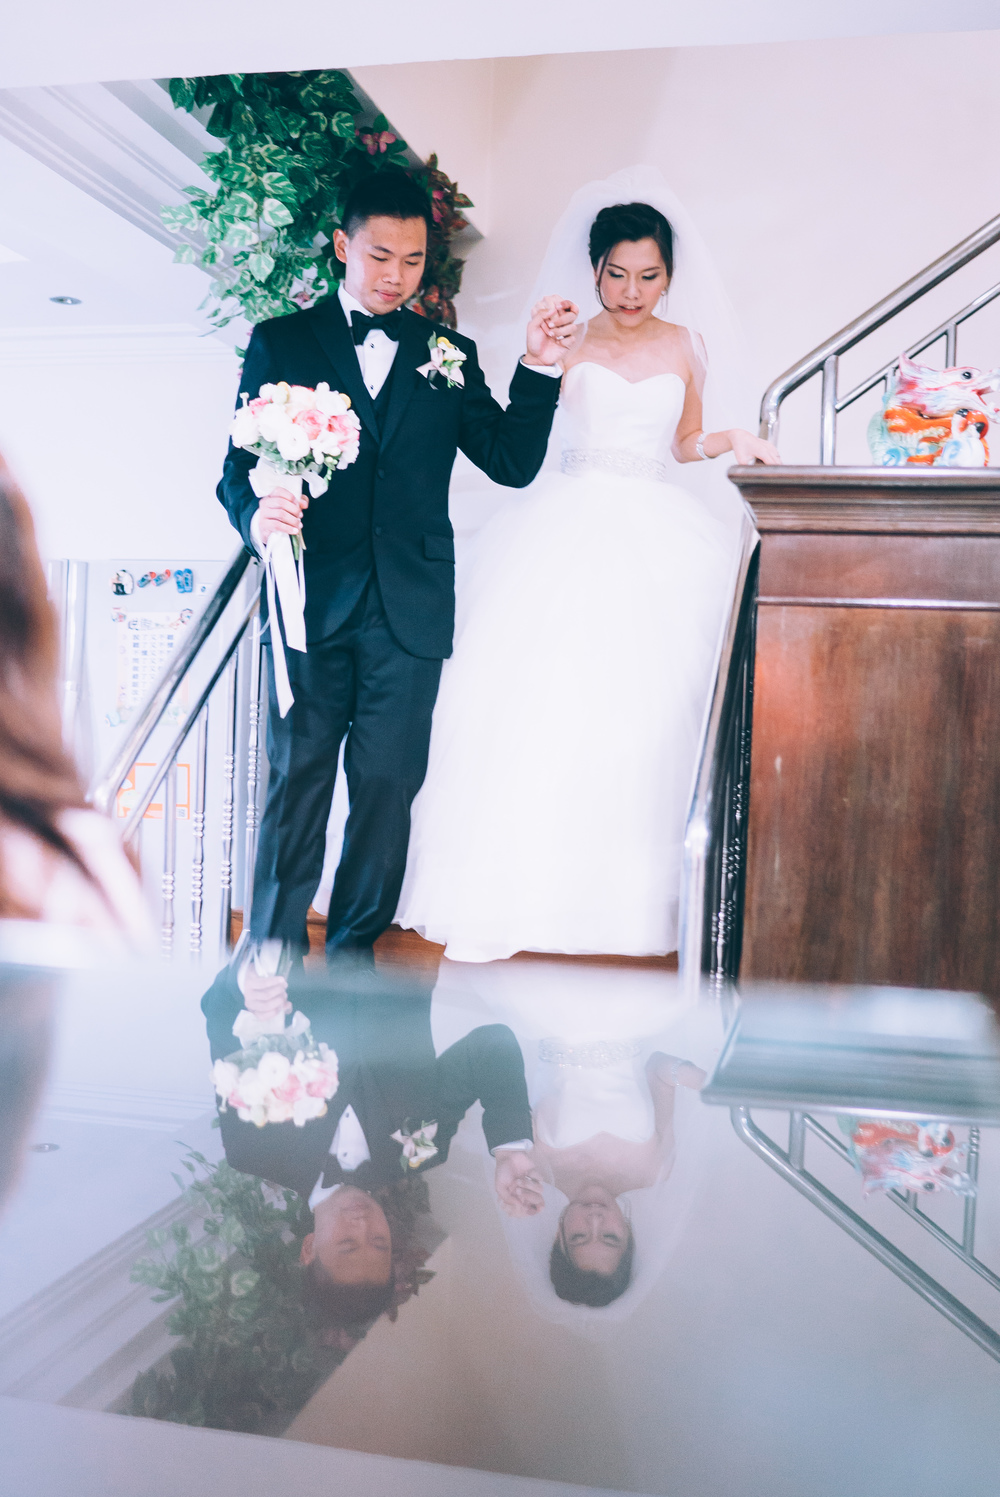 Singapore Wedding Photographer Conrad Hotel Actual Day Wedding chris chang photography087.JPG